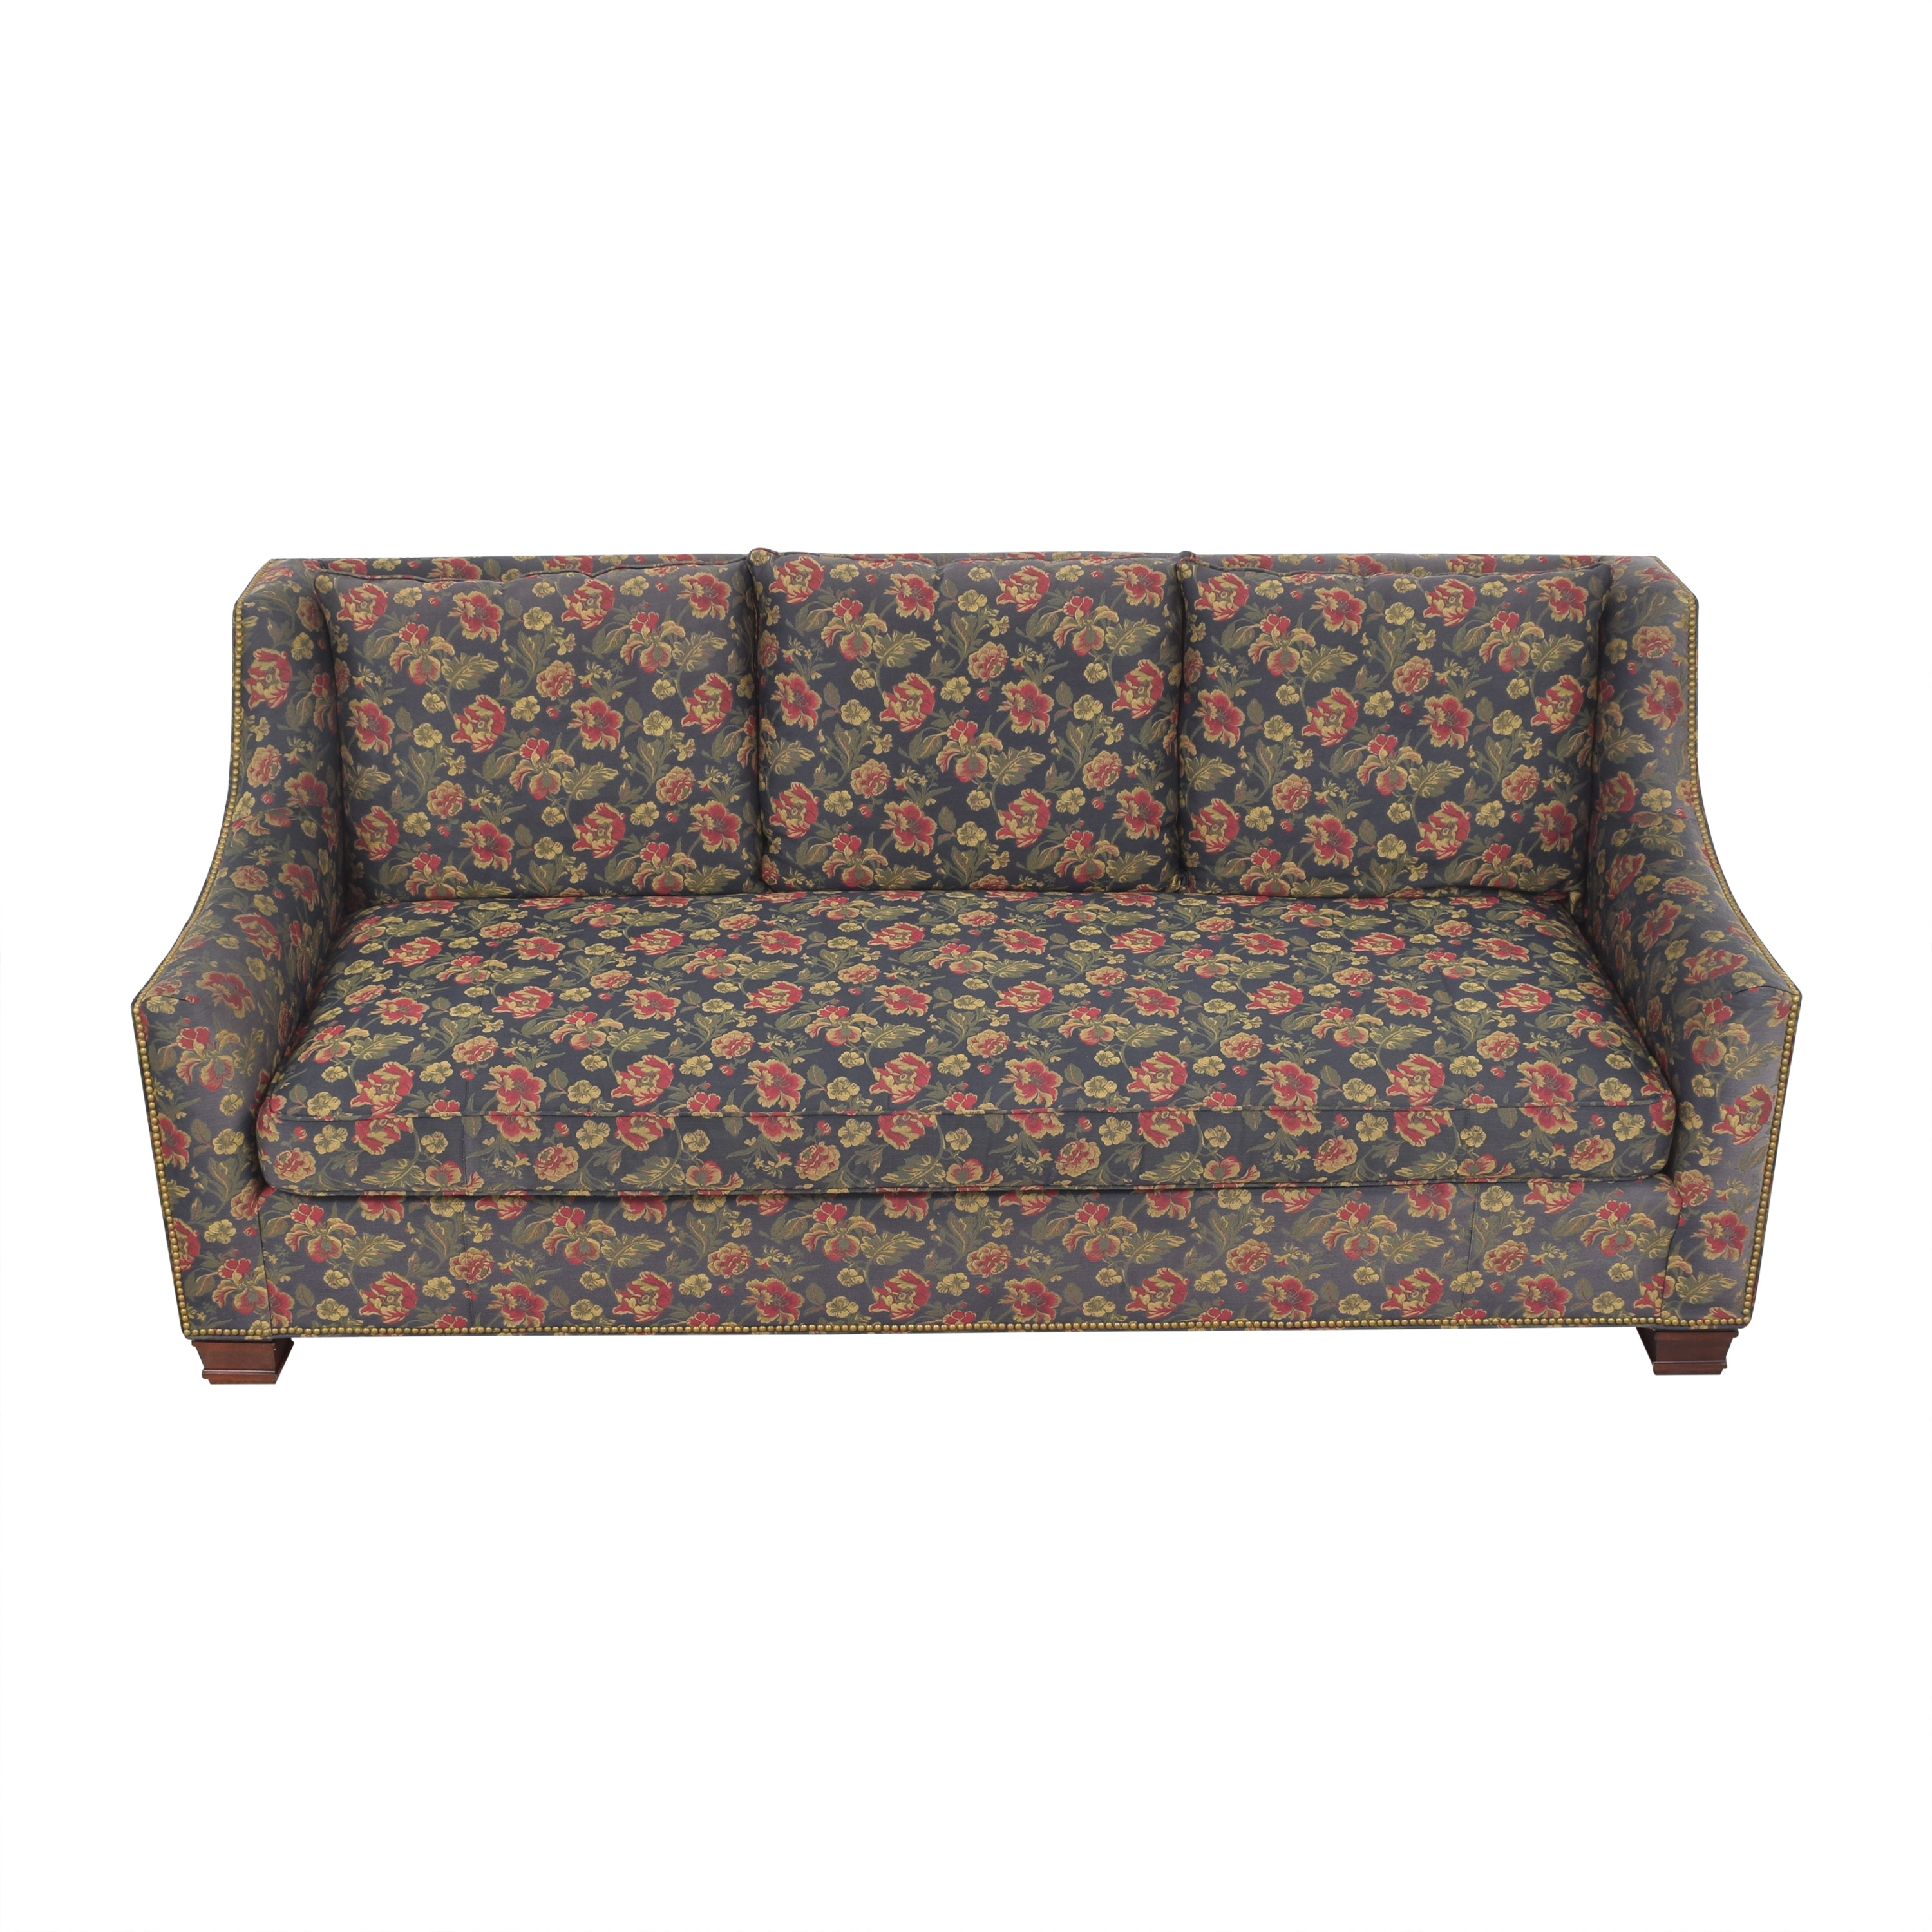 Hickory Chair Hickory Chair Custom Upholstered Sofa second hand